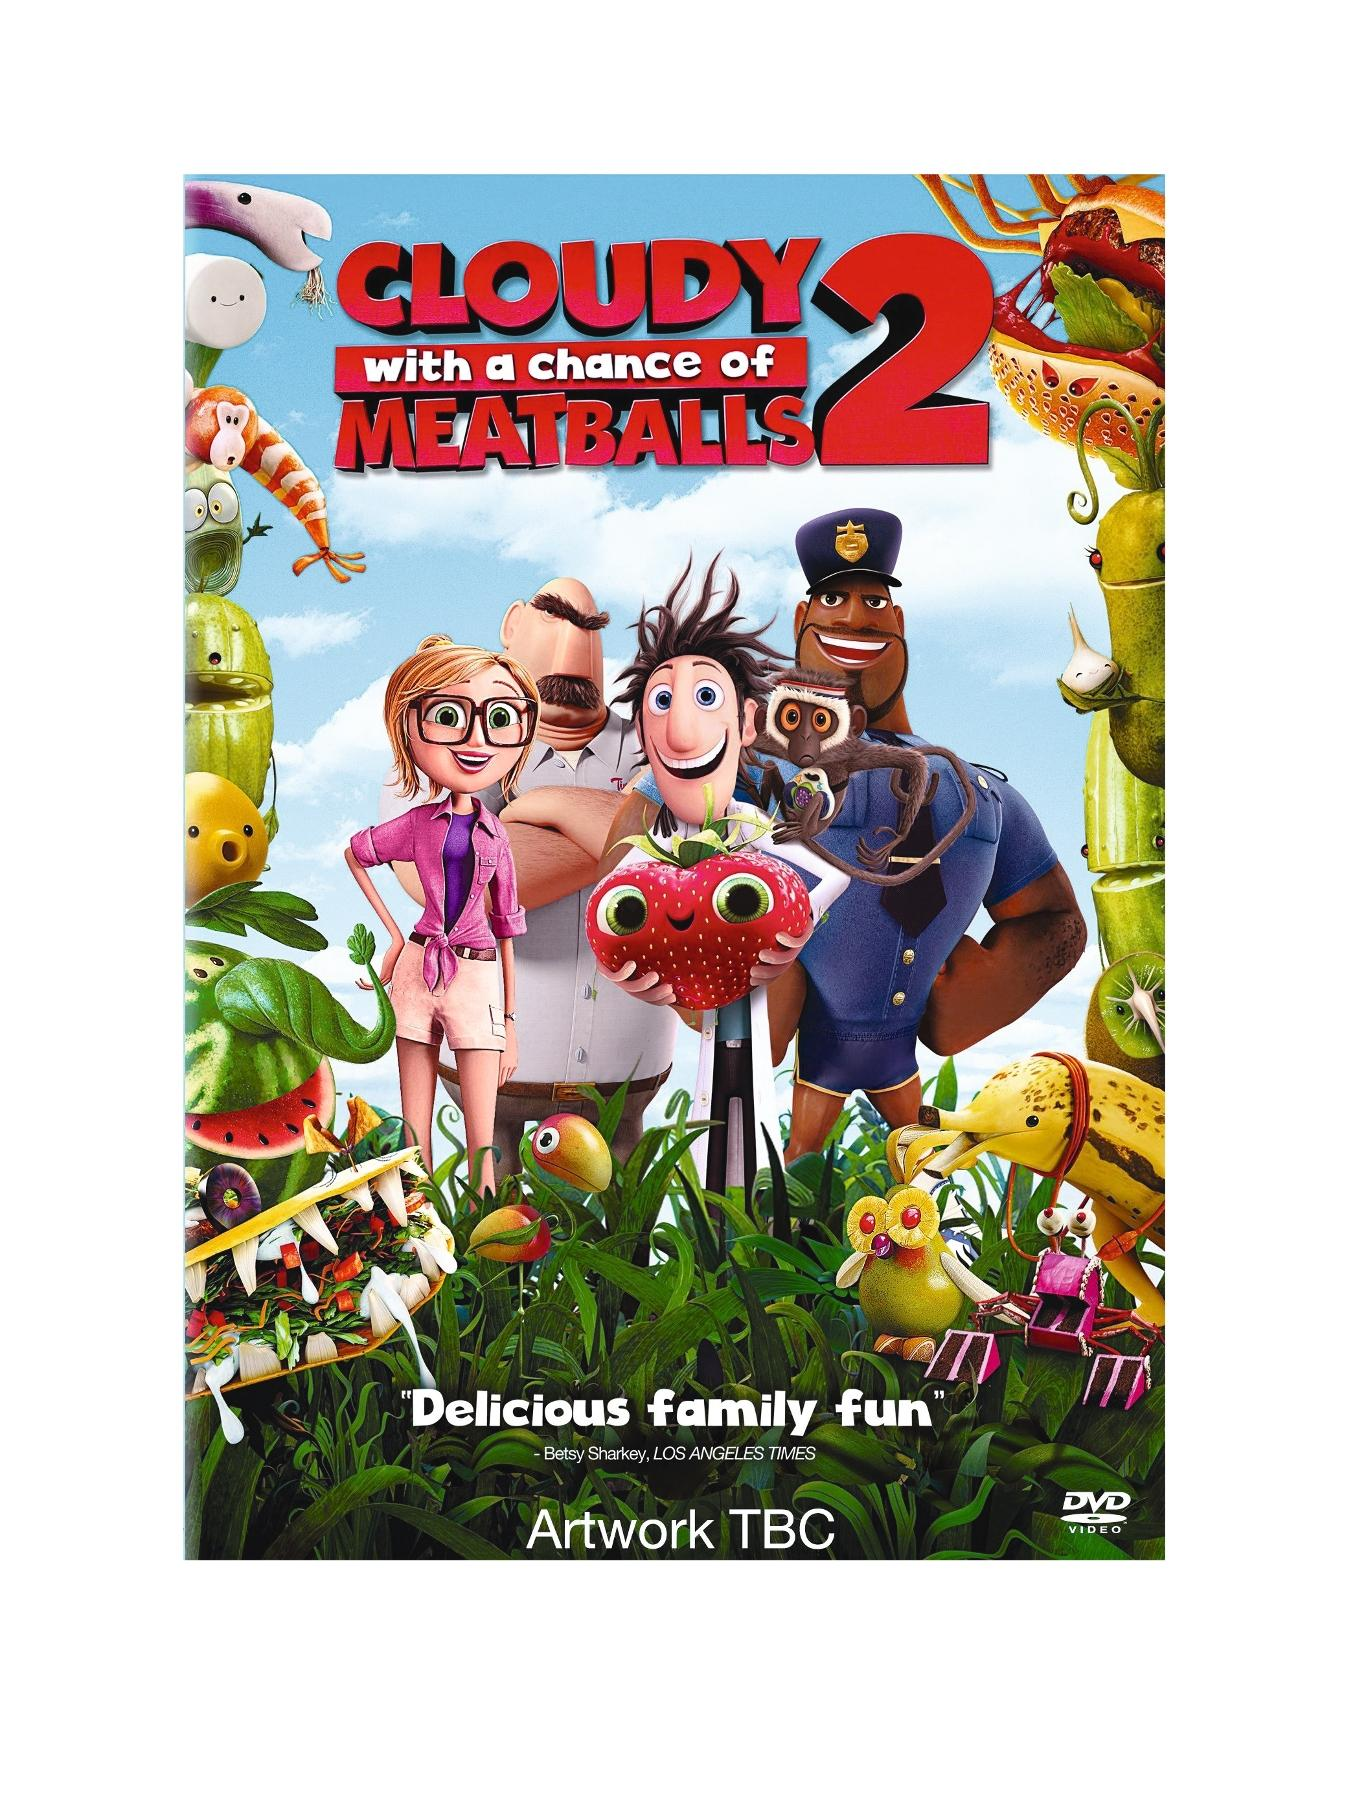 Cloudy With A Chance Of Meatballs 2 DVD - Includes FREE scratch and sniff stickers